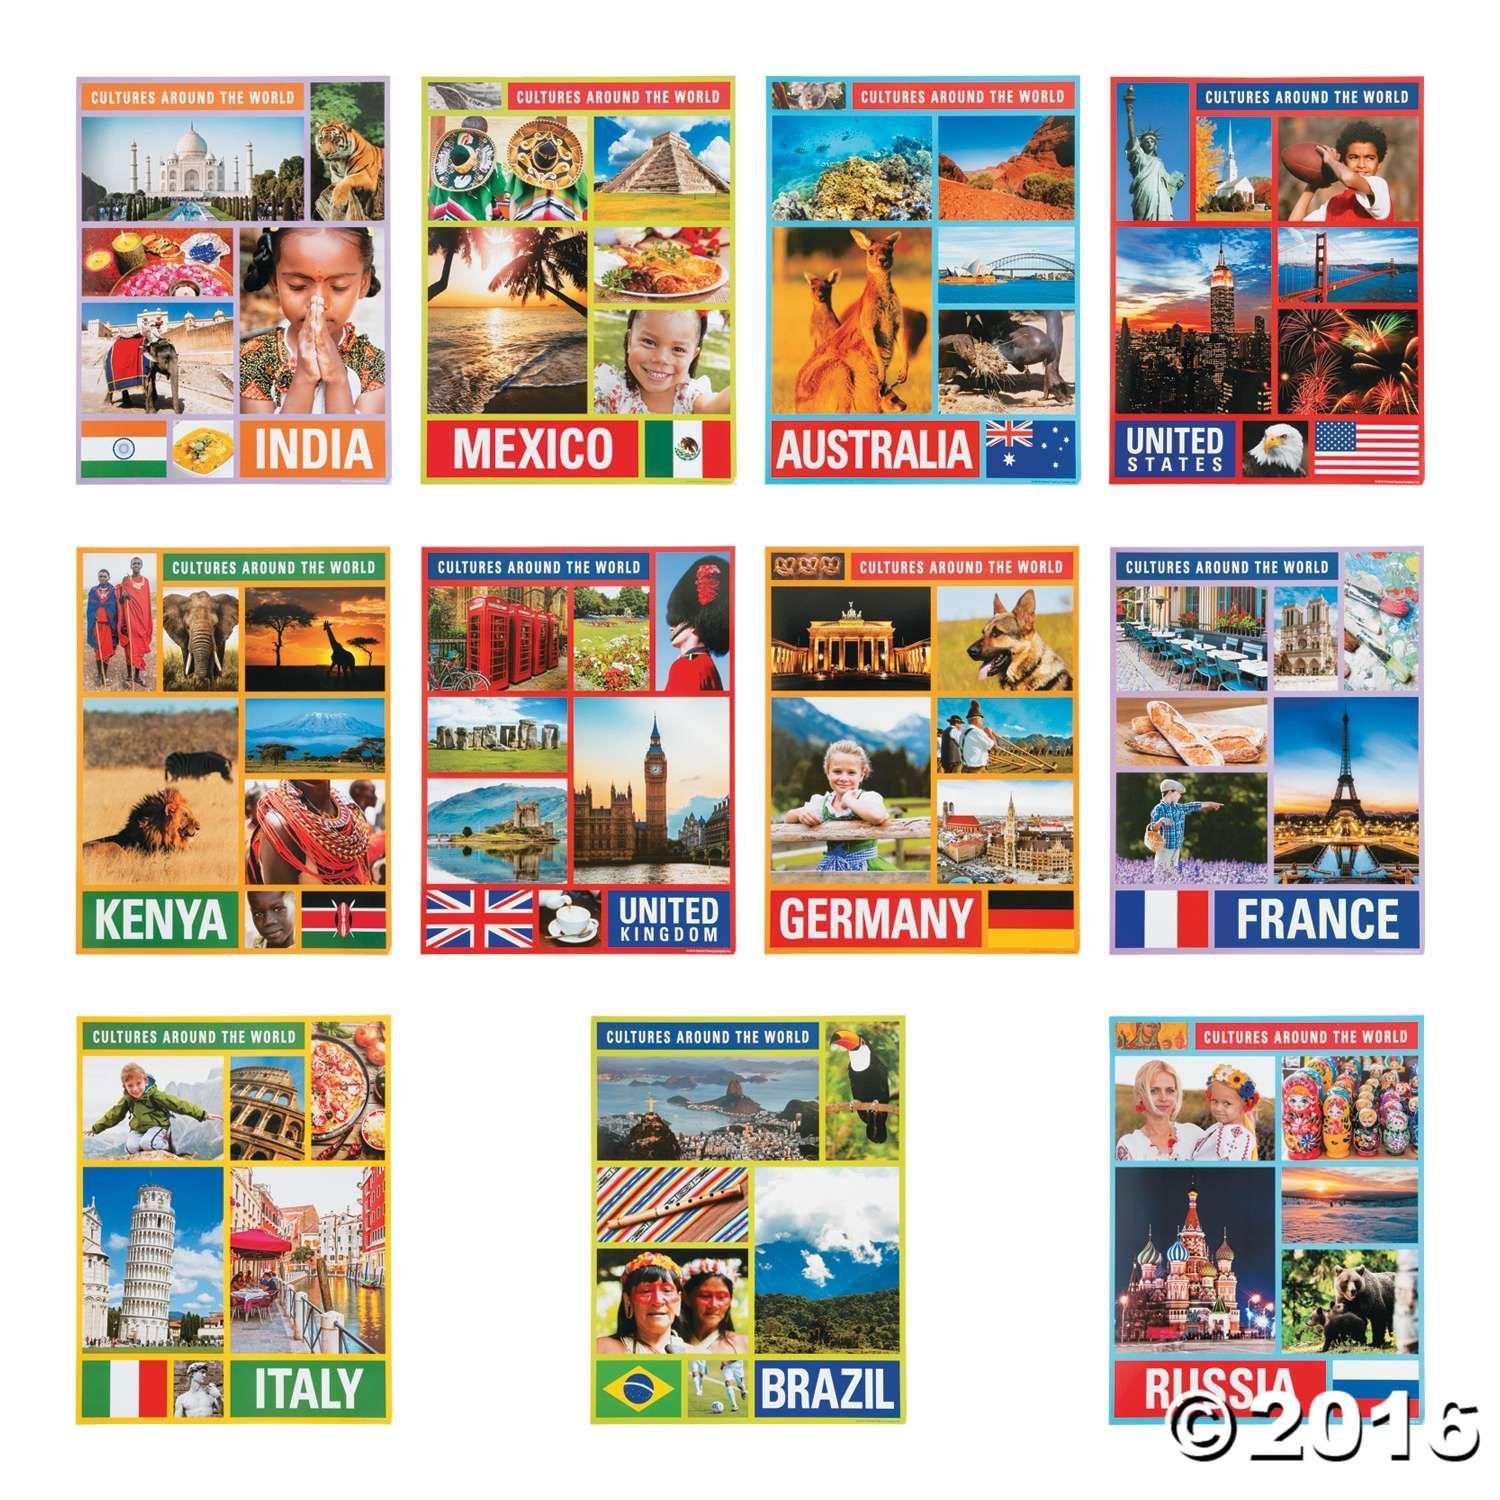 cultures around the world posters classroom world thinking day rh pinterest com